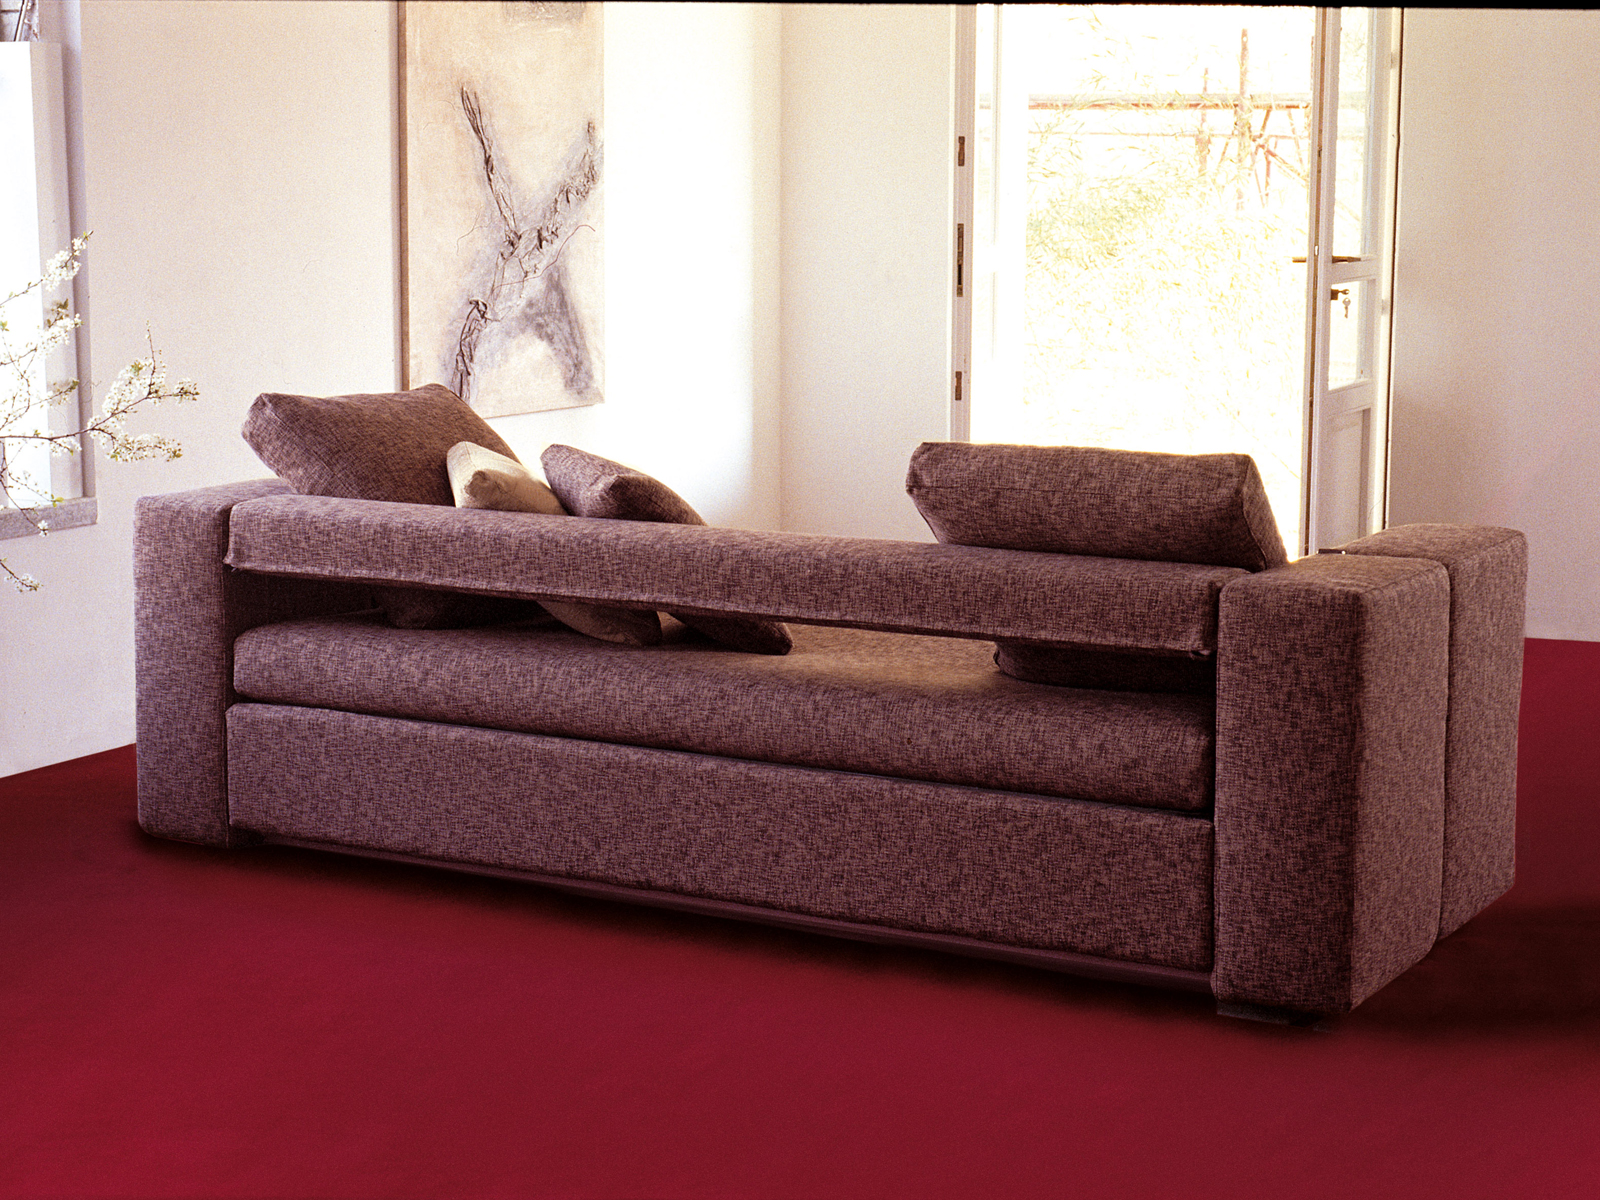 Two Tier Sofa Convertible Sofa Two Storey Coupe Sofa Folding And Double Model Of The Brand Proteas